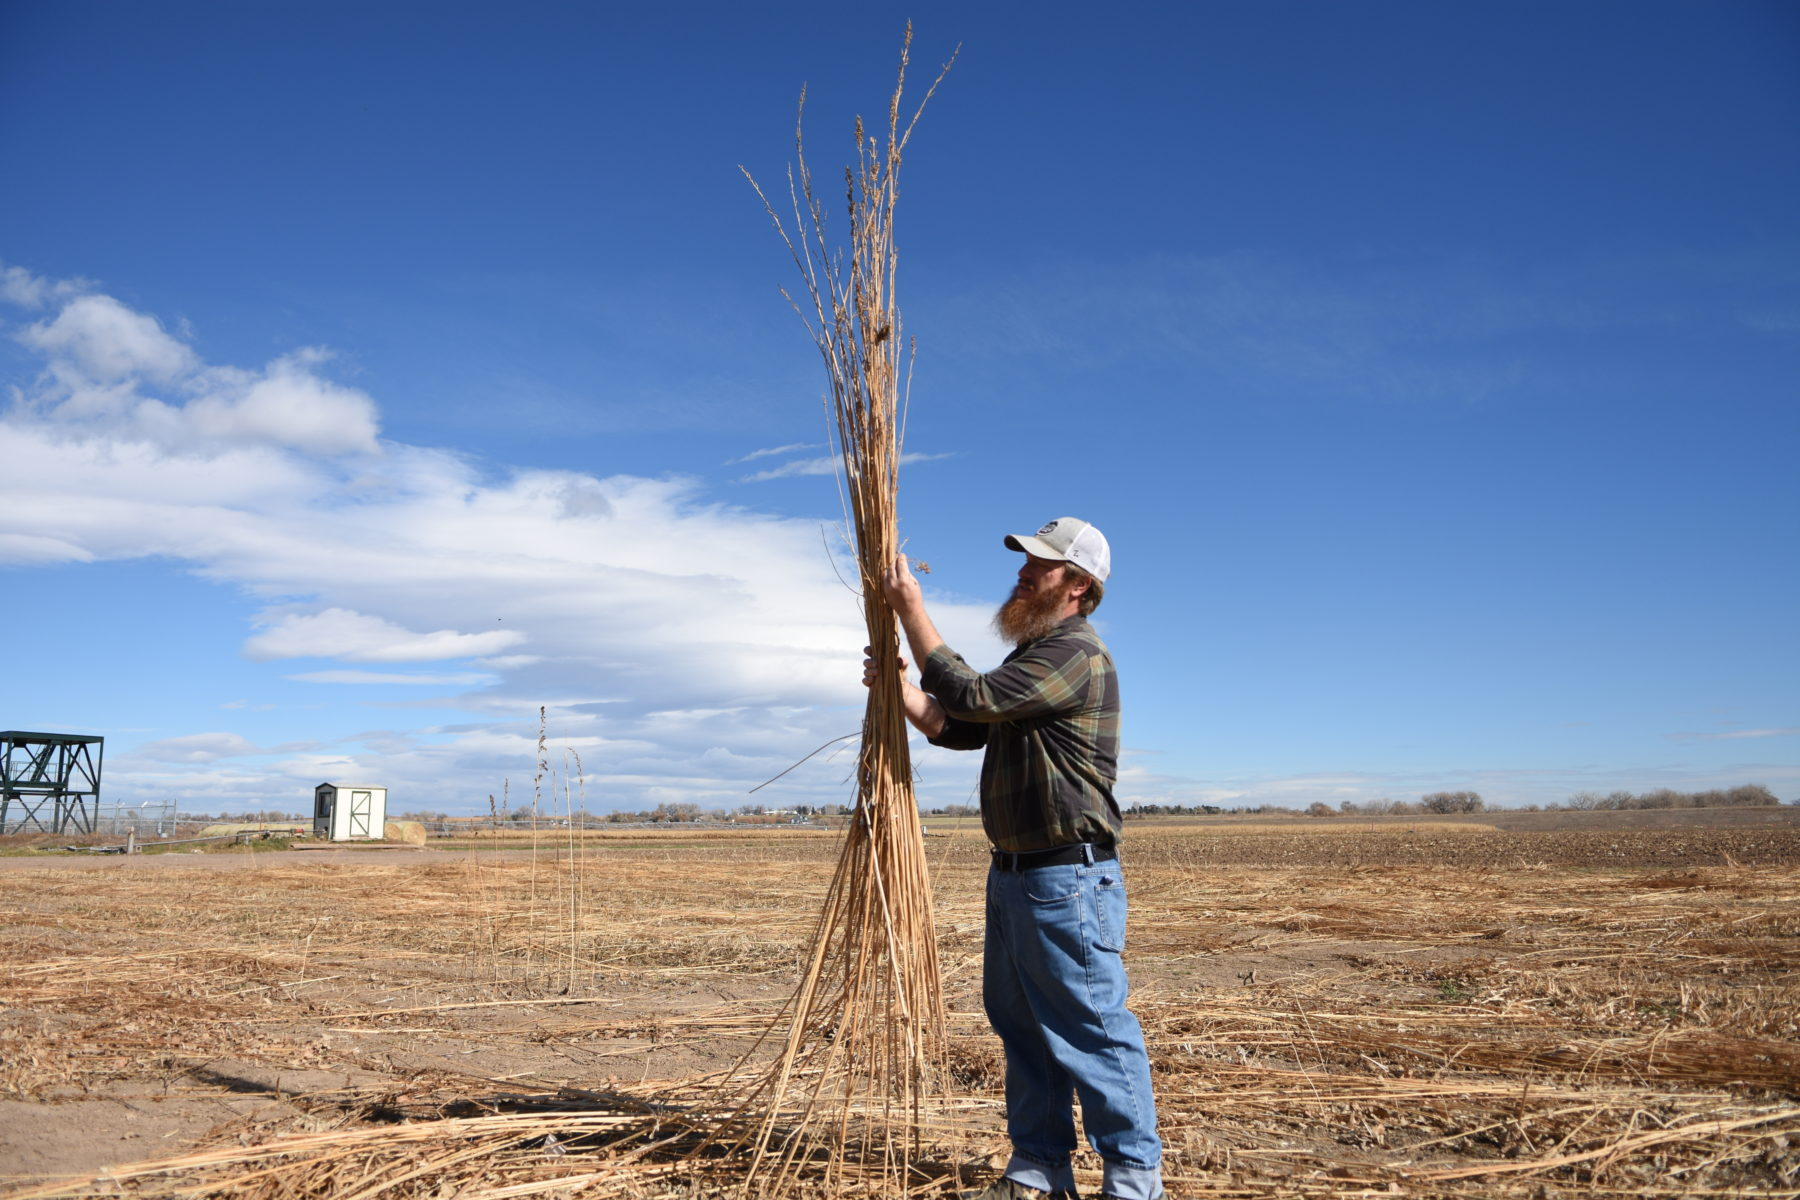 CSU partners in research project about rural sustainability – The Rocky Mountain Collegian - Rocky Mountain Collegian